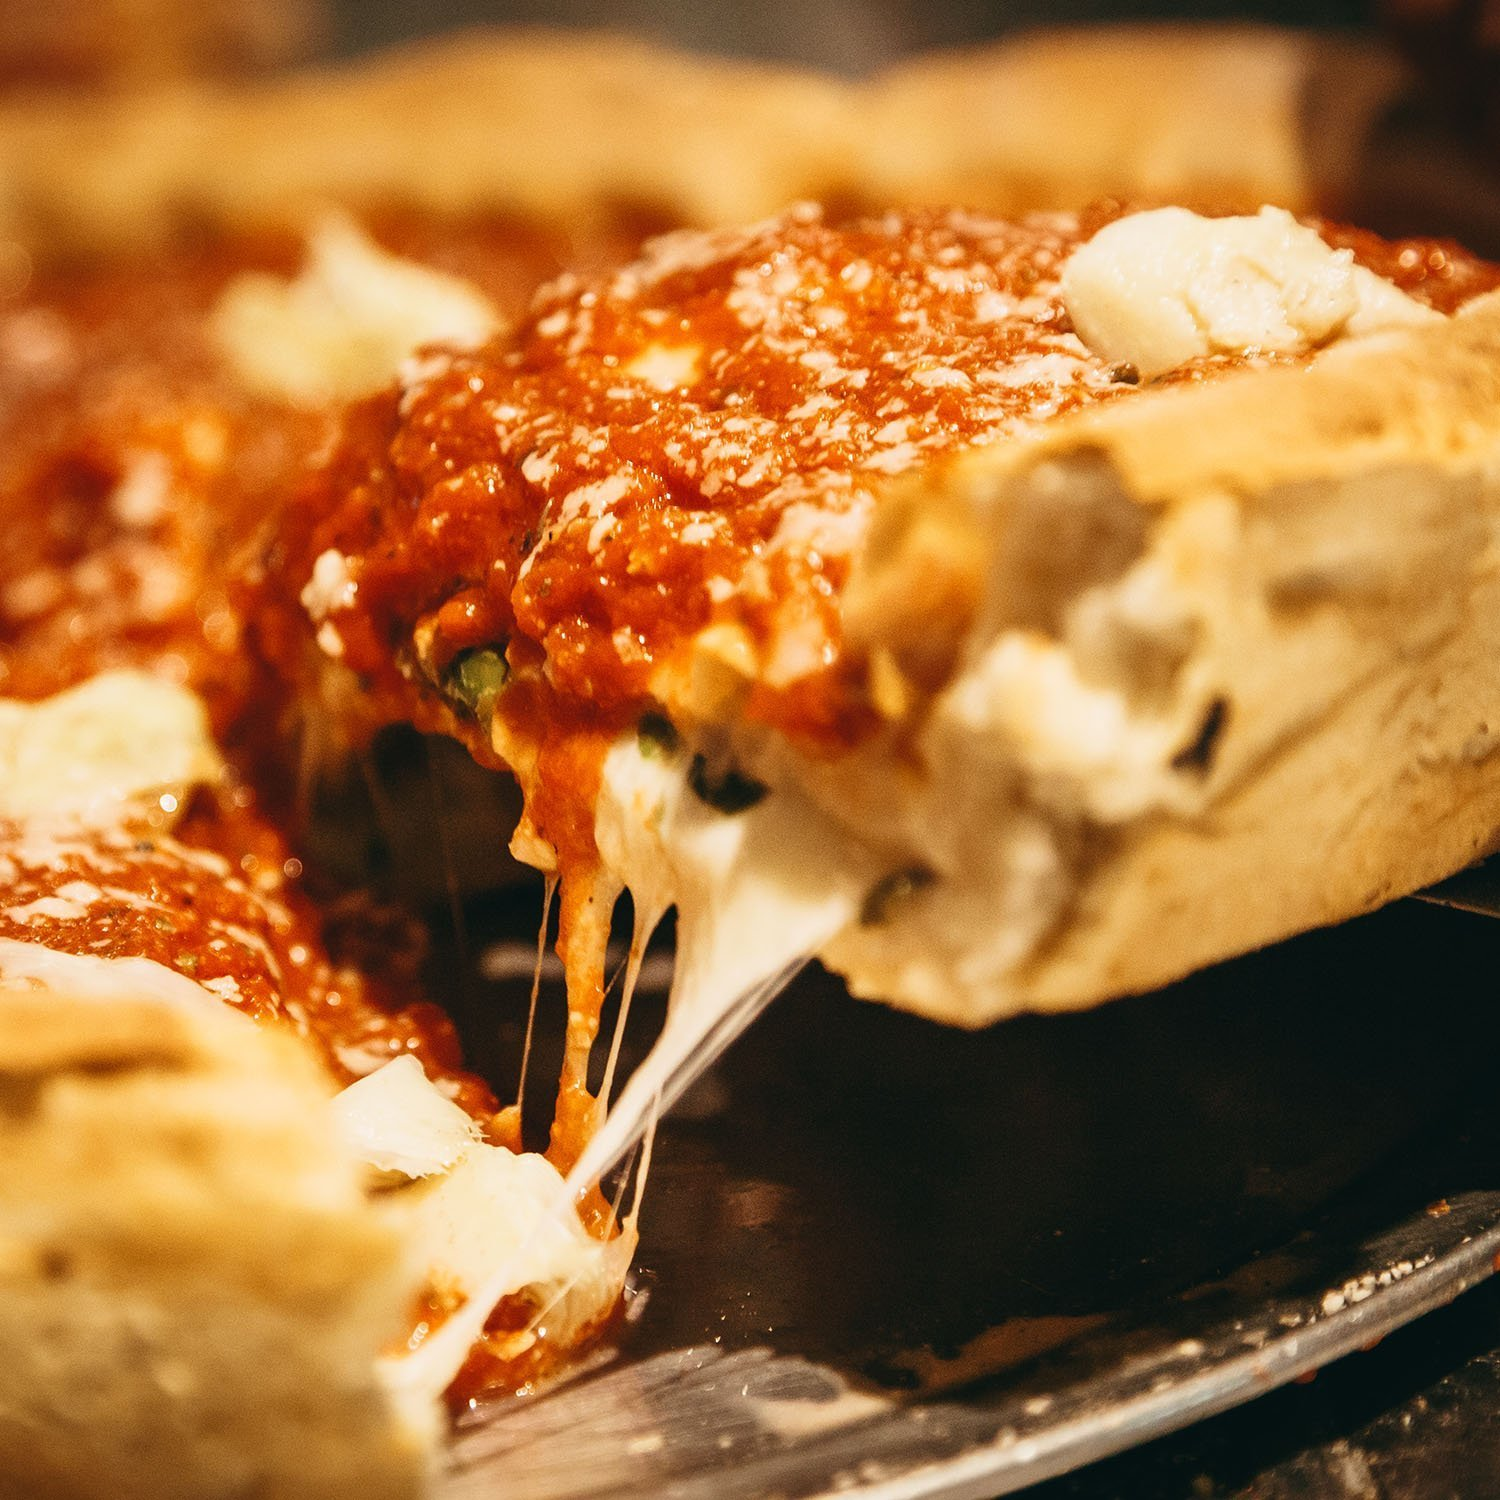 Regents Chicago Pizza Slice